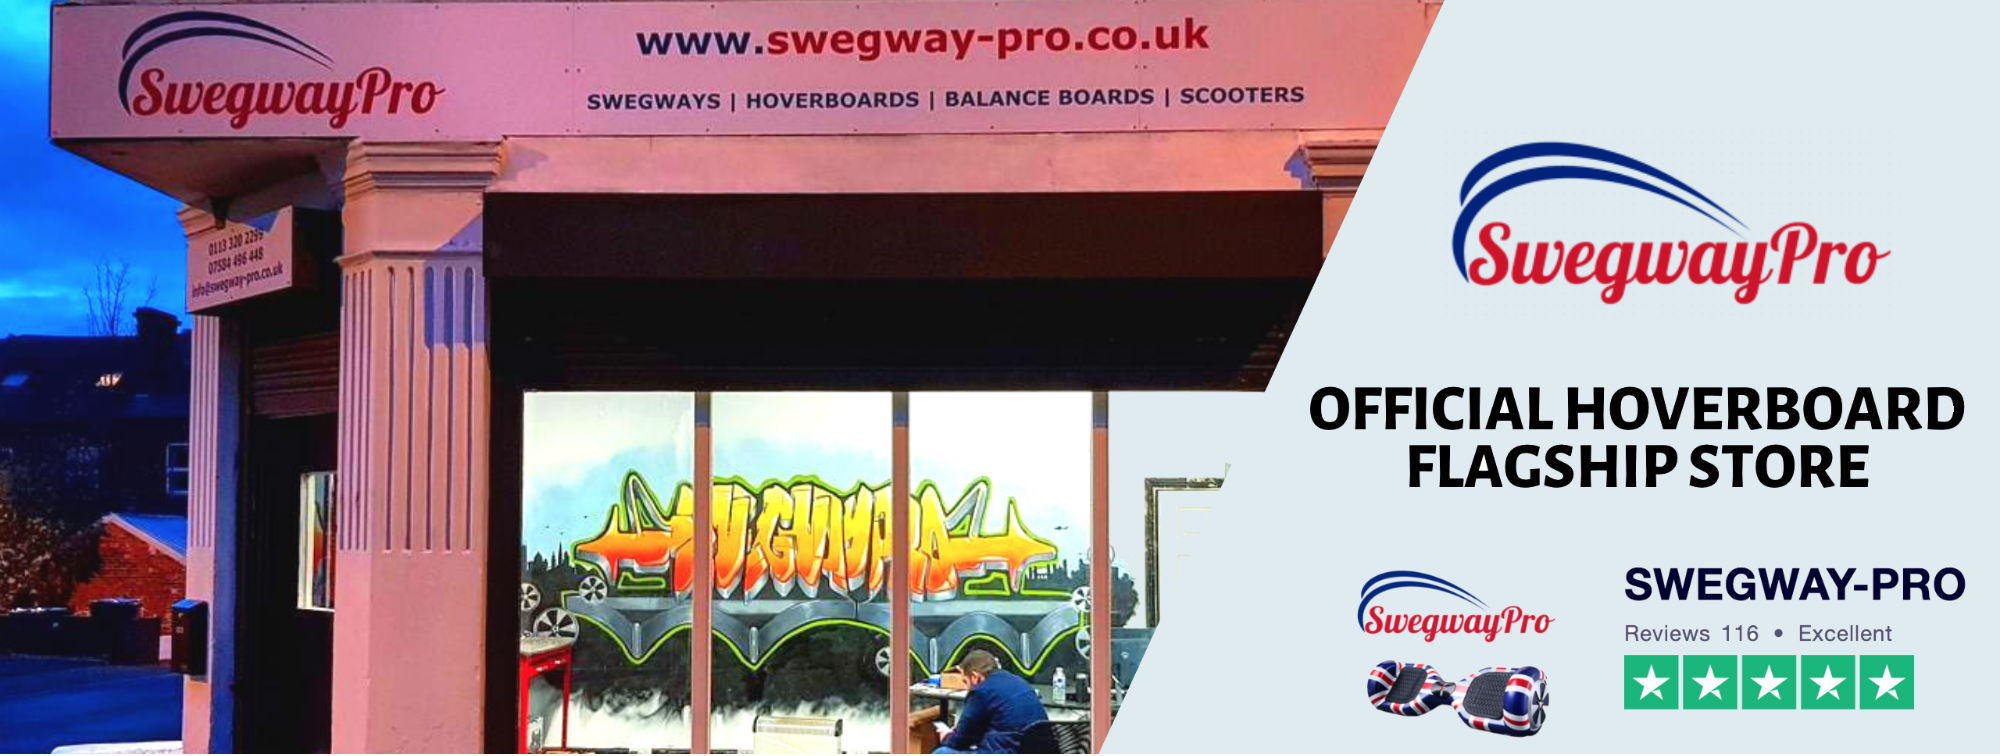 Official Hoverboard UK Flagship Store